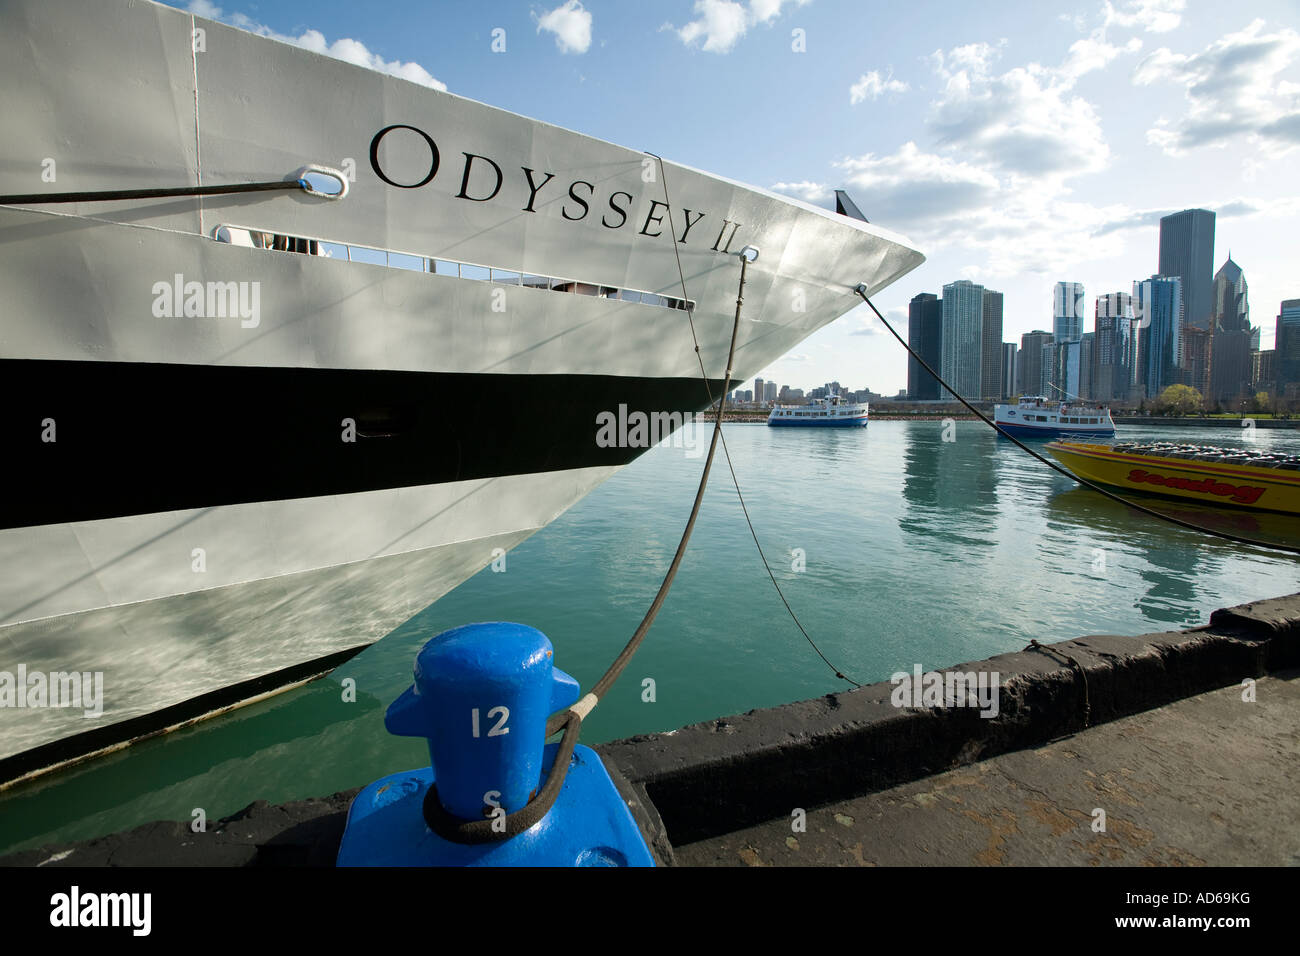 CHICAGO Illinois Odyssey cruise boat tied to dock at Navy Pier boat for cruises and parties tour boats and city - Stock Image